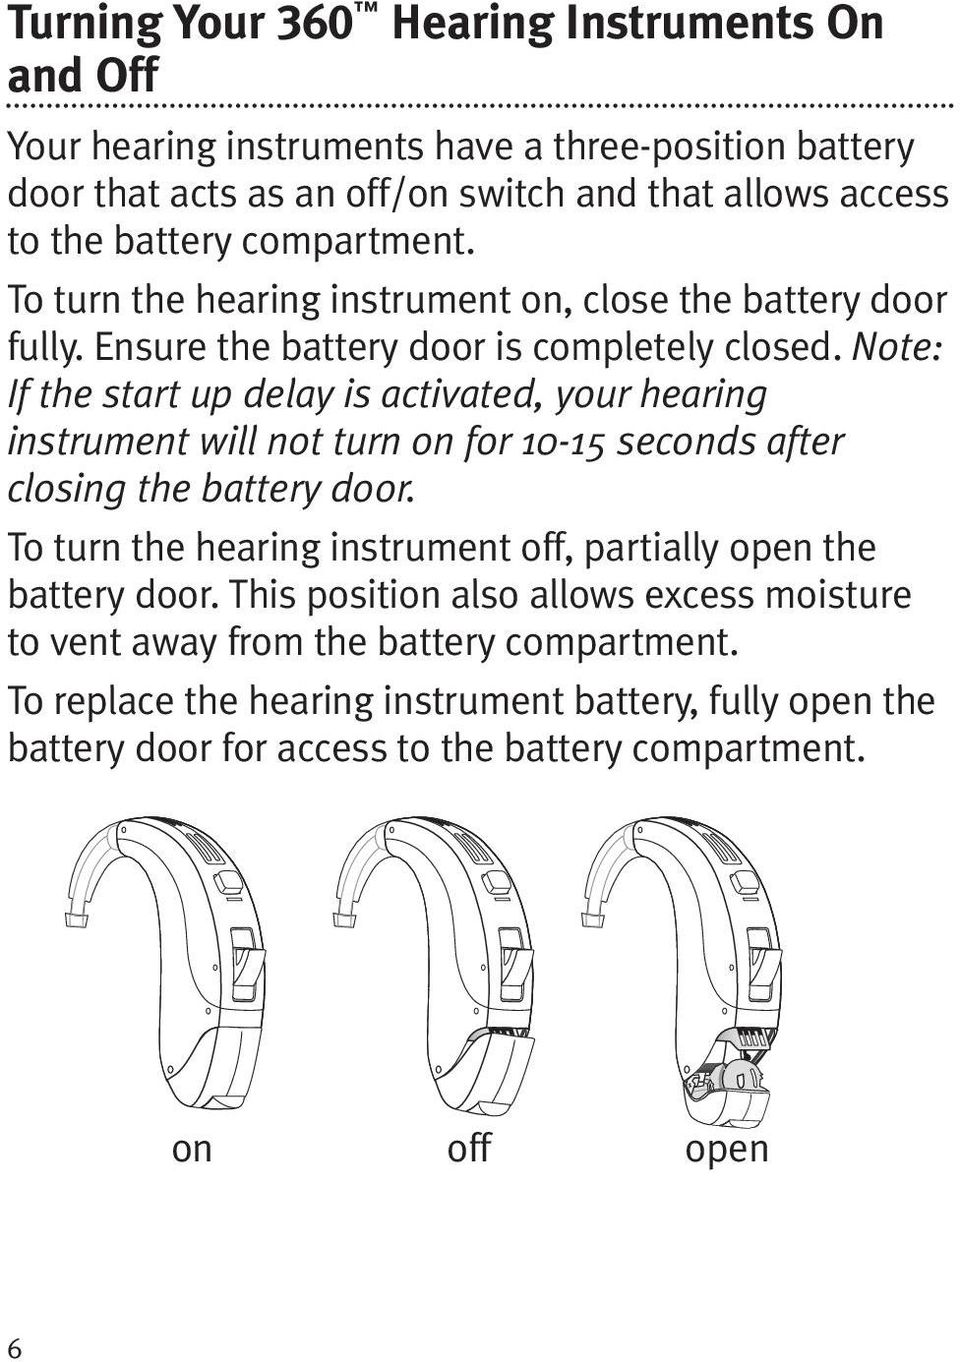 Note: If the start up delay is activated, your hearing instrument will not turn on for 10-15 seconds after closing the battery door.